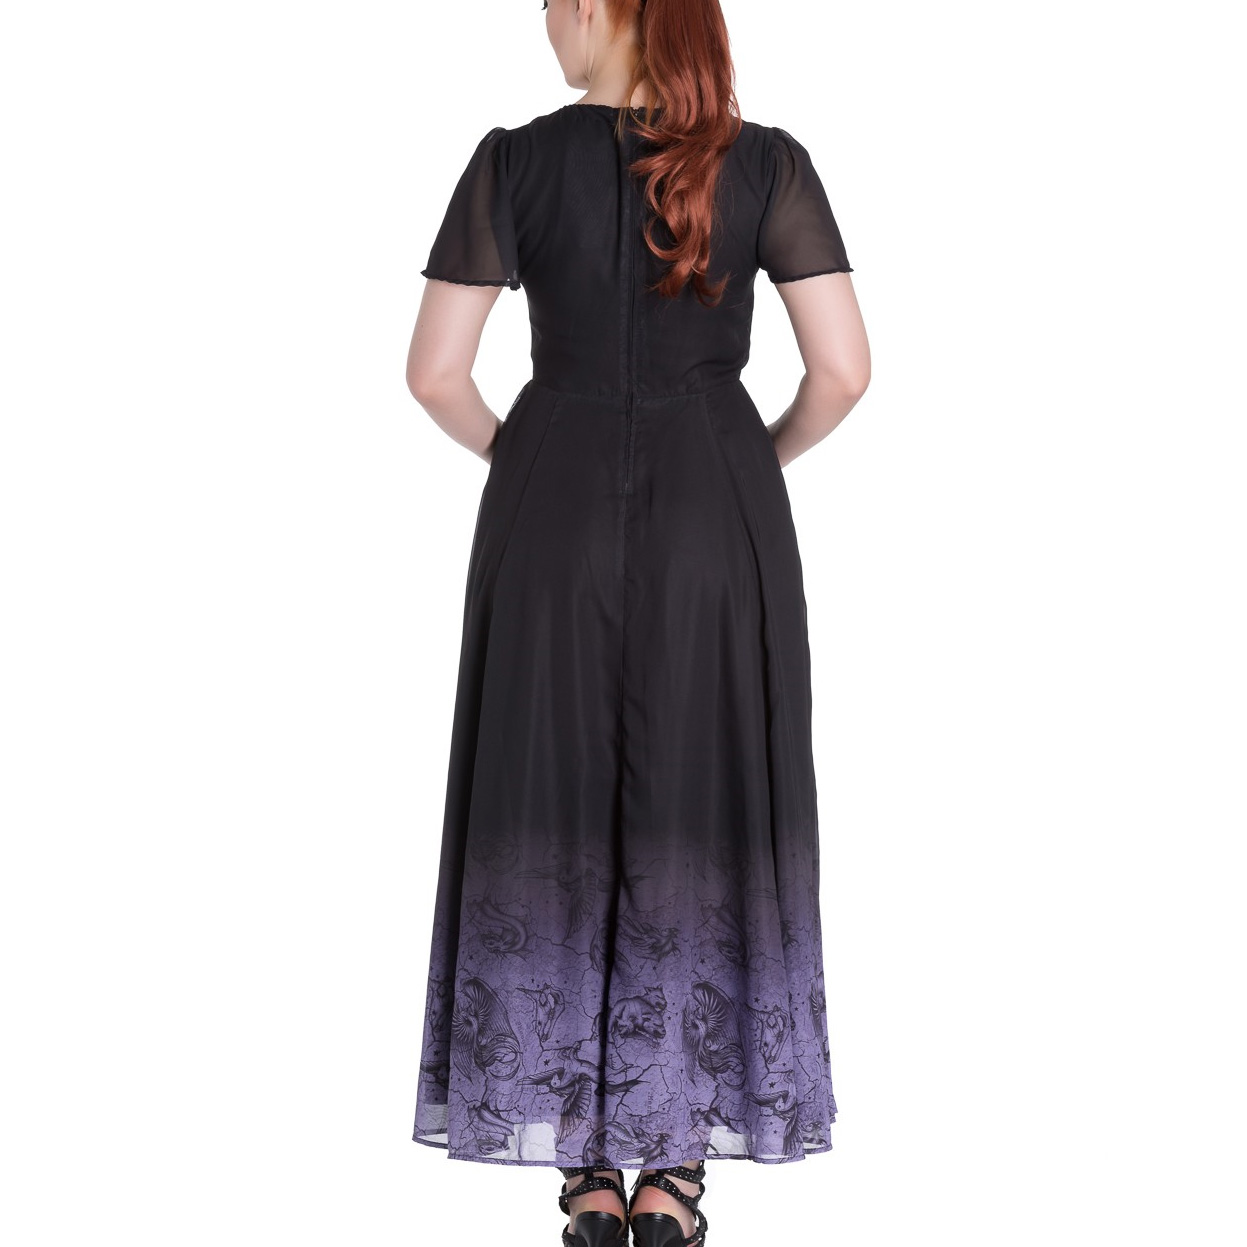 Hell-Bunny-Spin-Doctor-Goth-Maxi-Dress-EVADINE-Purple-Black-All-Sizes thumbnail 4